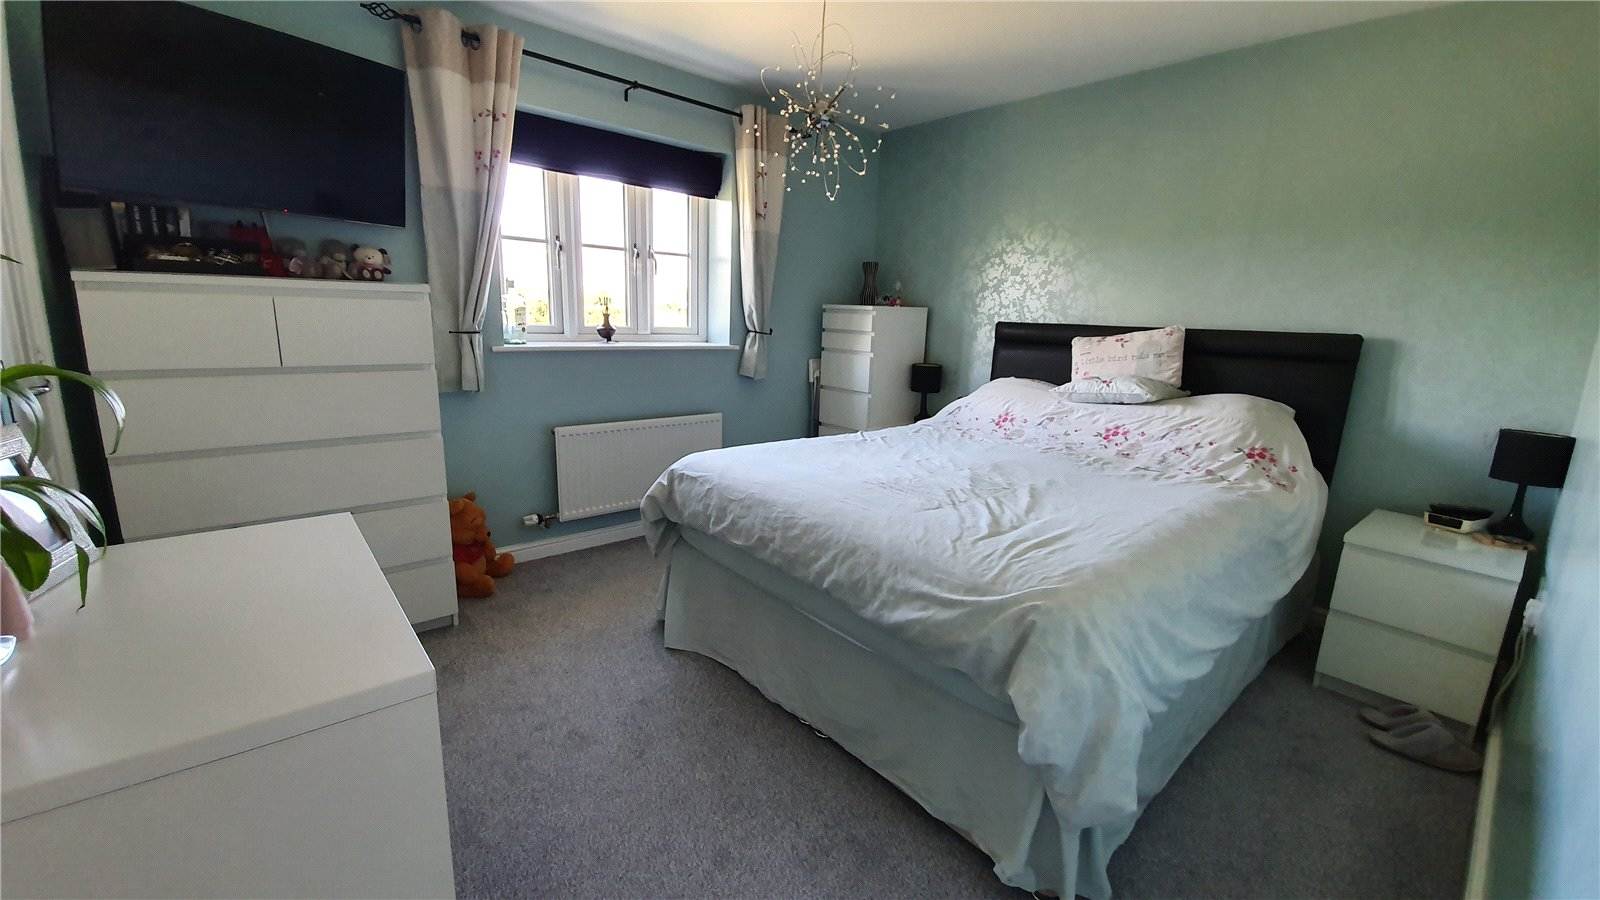 3 bed house for sale in Lannesbury Crescent, St Neots  - Property Image 11